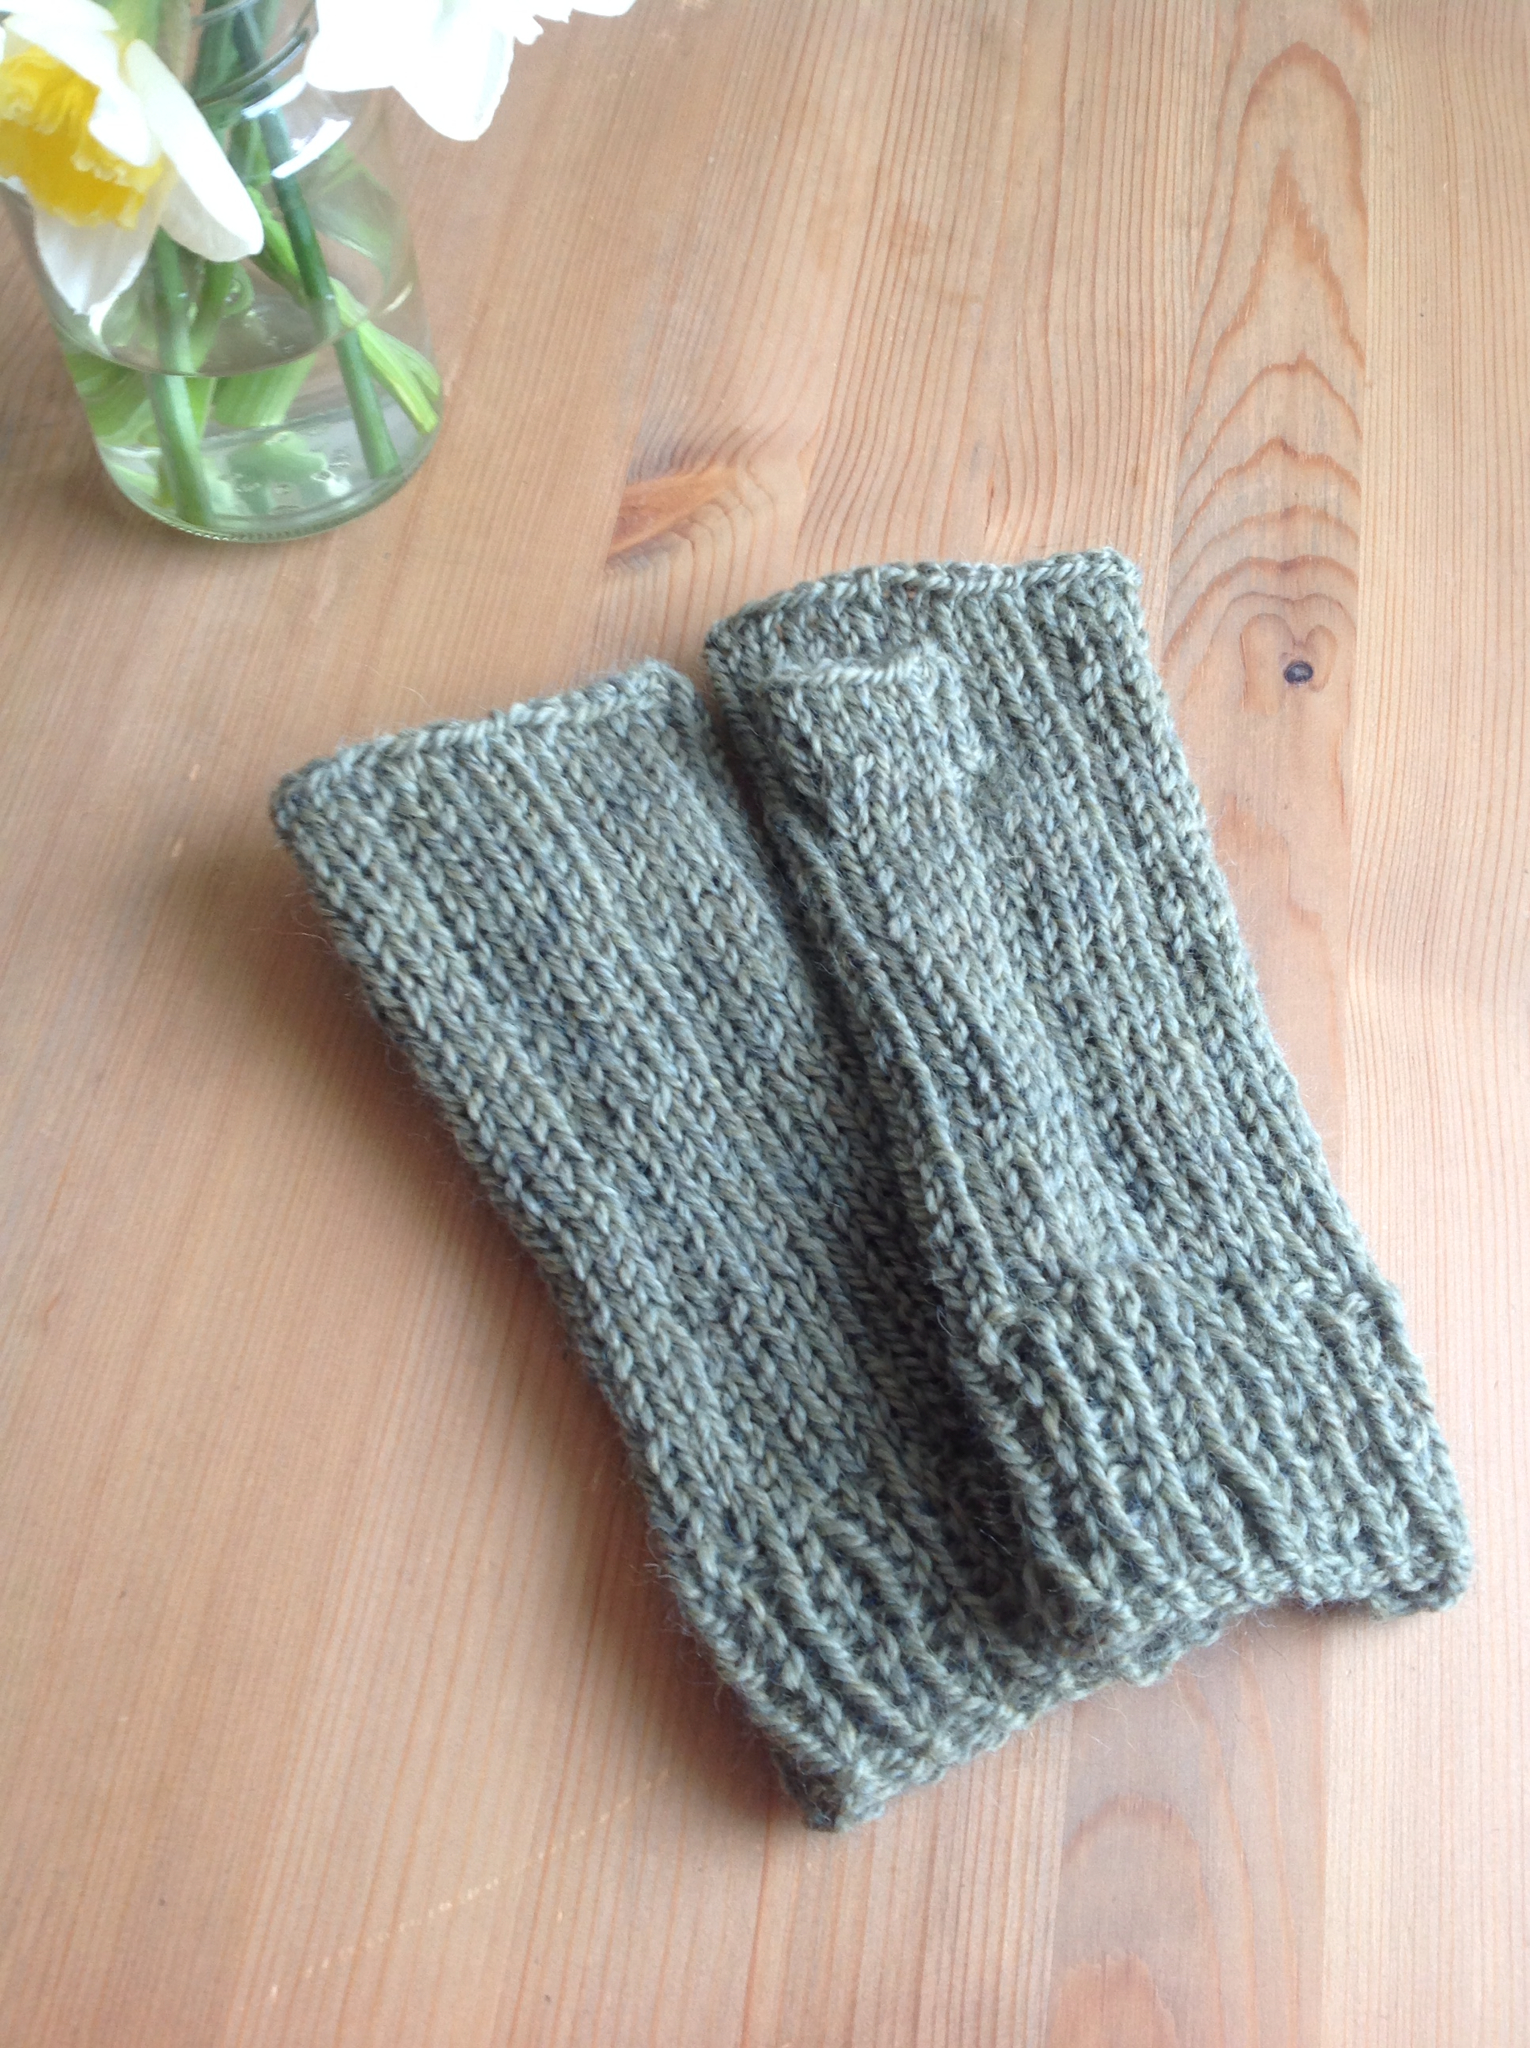 Grace paretree handmade monday easy knitted wrist warmers make rather than the method described in the pattern it may well have worked fine but i couldnt figure out how so i stuck to a method i know works bankloansurffo Image collections